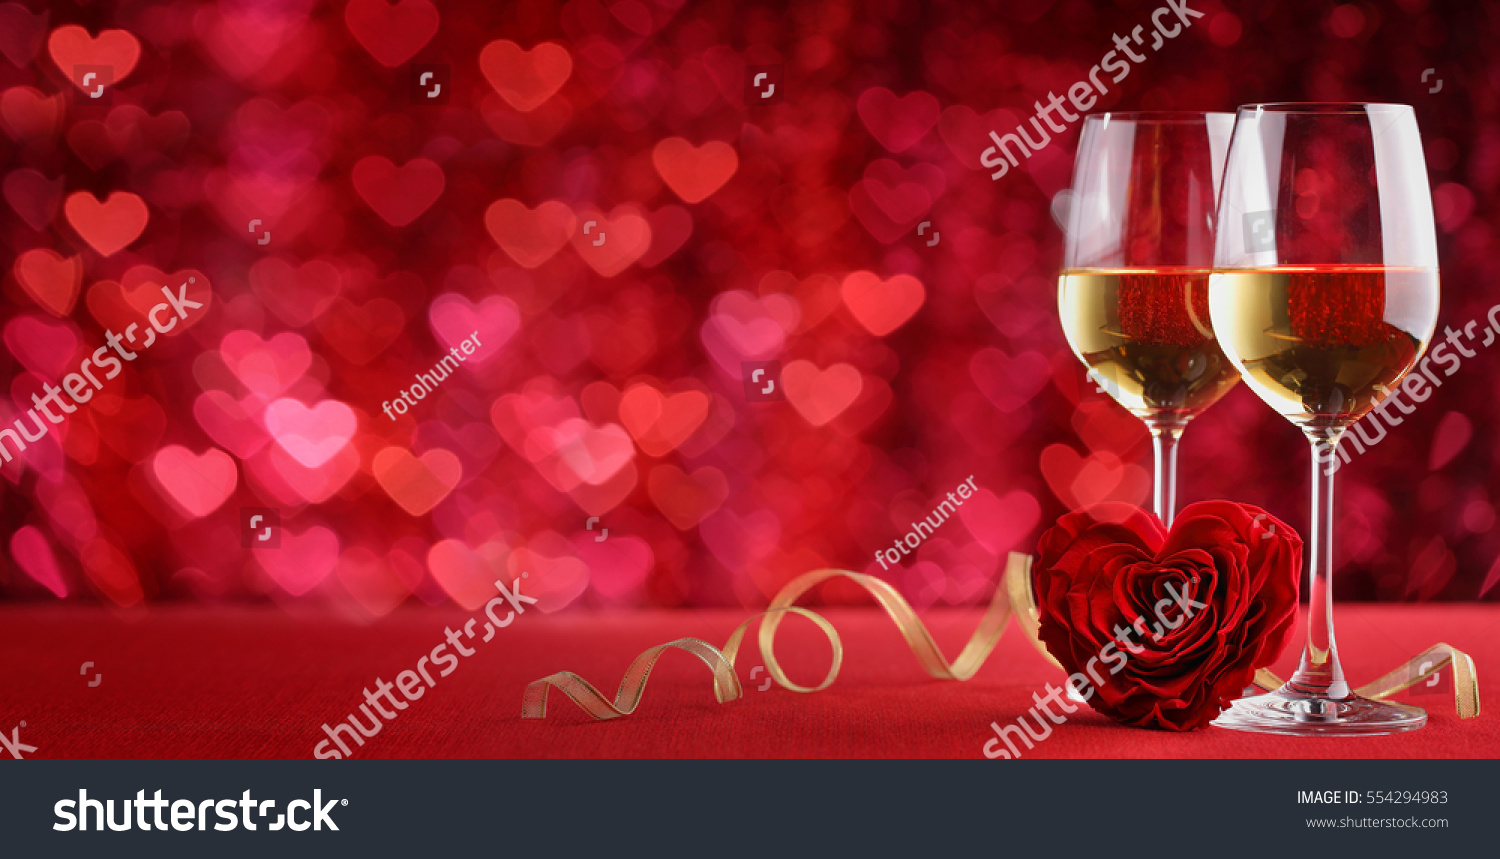 Valentines wine and rose,heart background